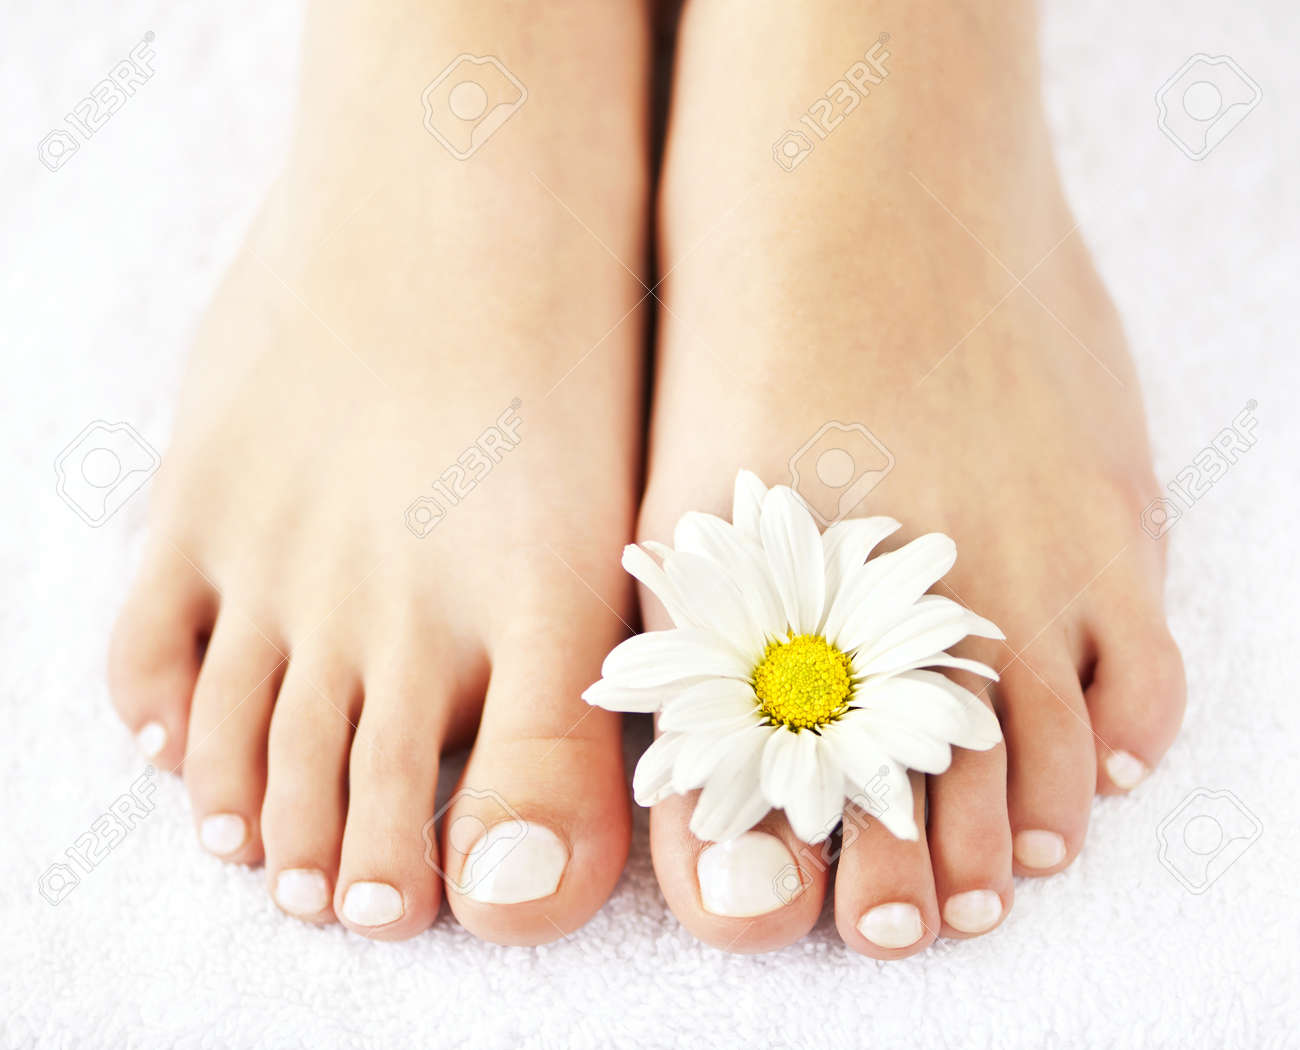 soft female feet with pedicure and flowers close up stock photo